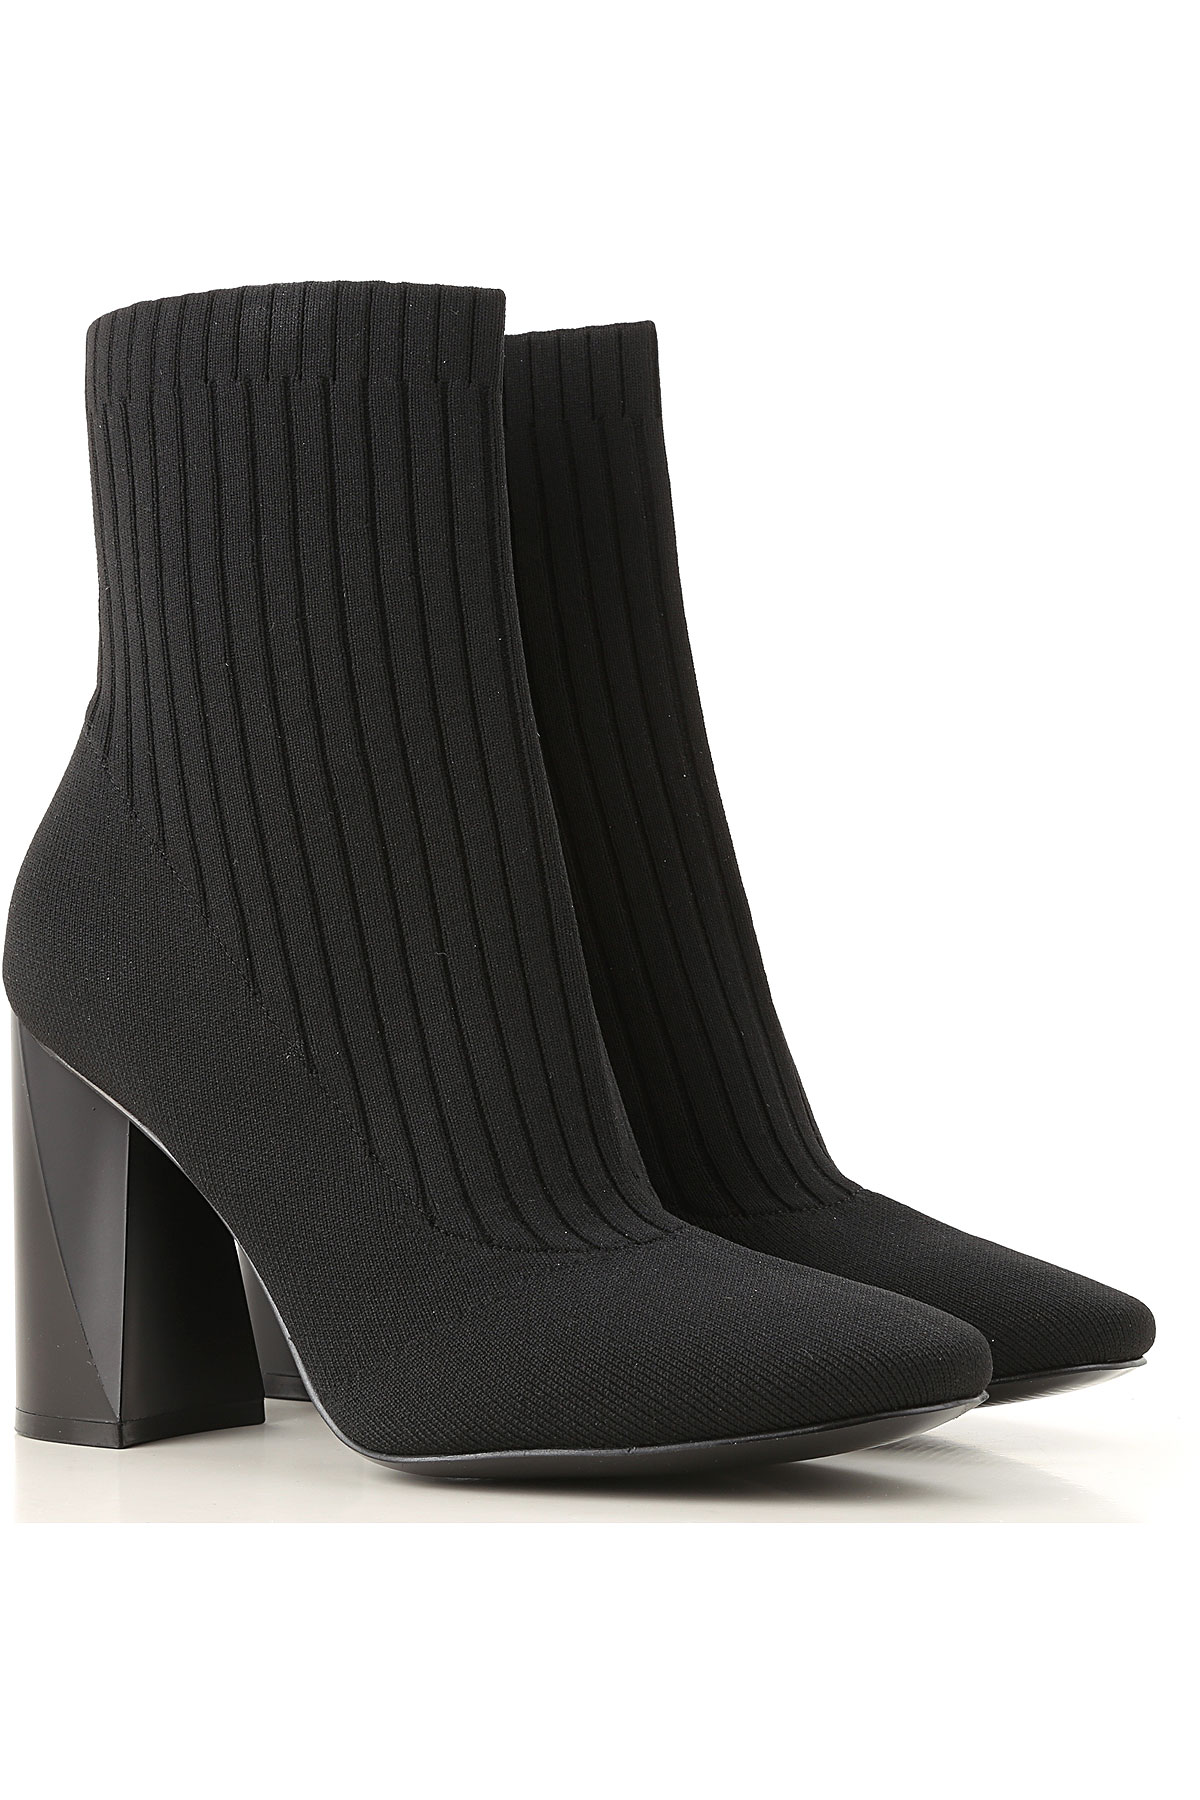 Image of Kendall Kylie Boots for Women, Booties, Black, Fabric, 2017, 10 6.5 7 8 9 9.5